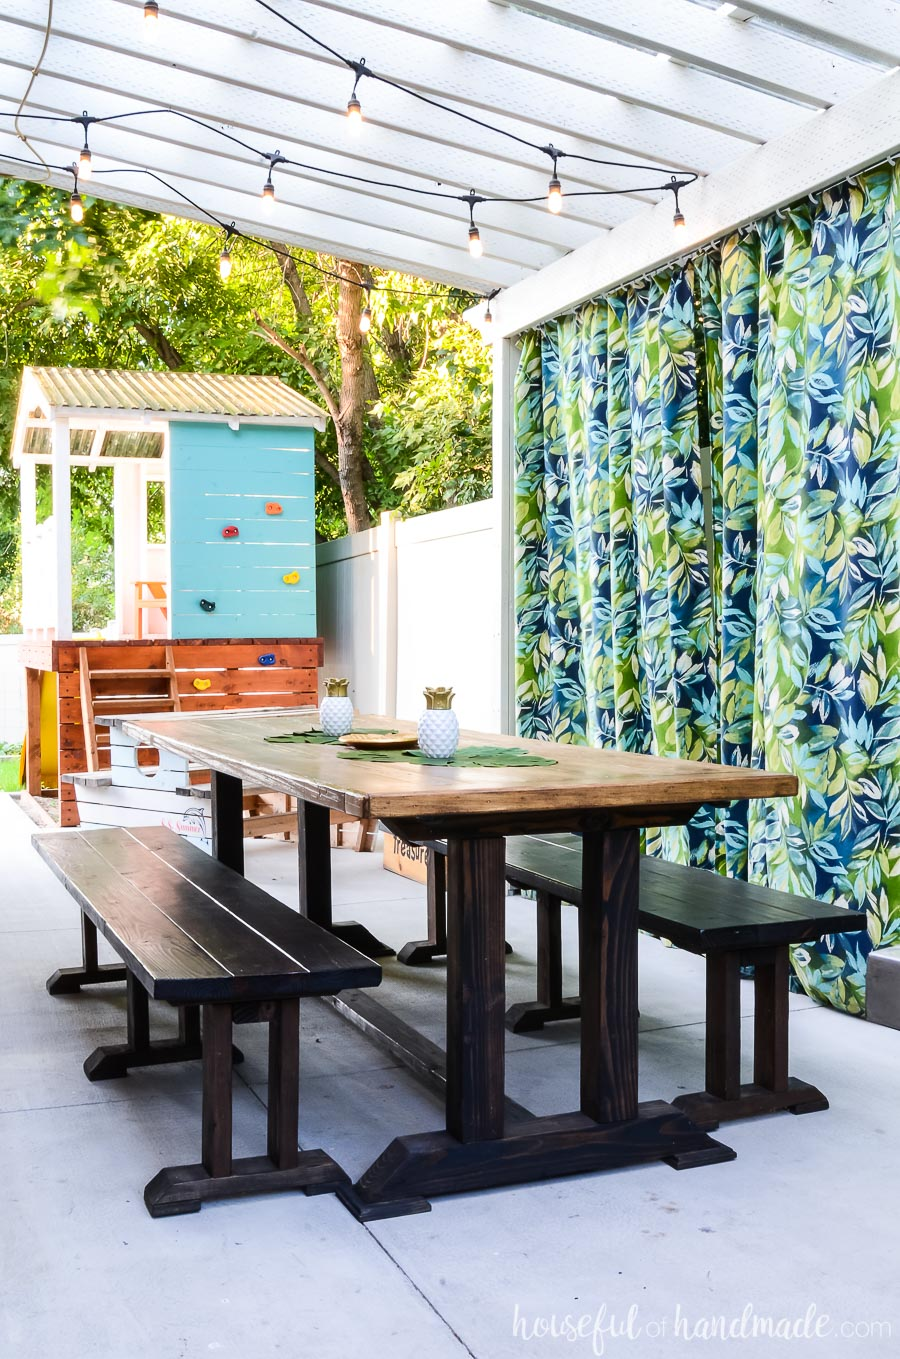 Island Inspired Outdoor Living Spaces - Houseful of Handmade on Living Spaces Outdoor Dining id=84293